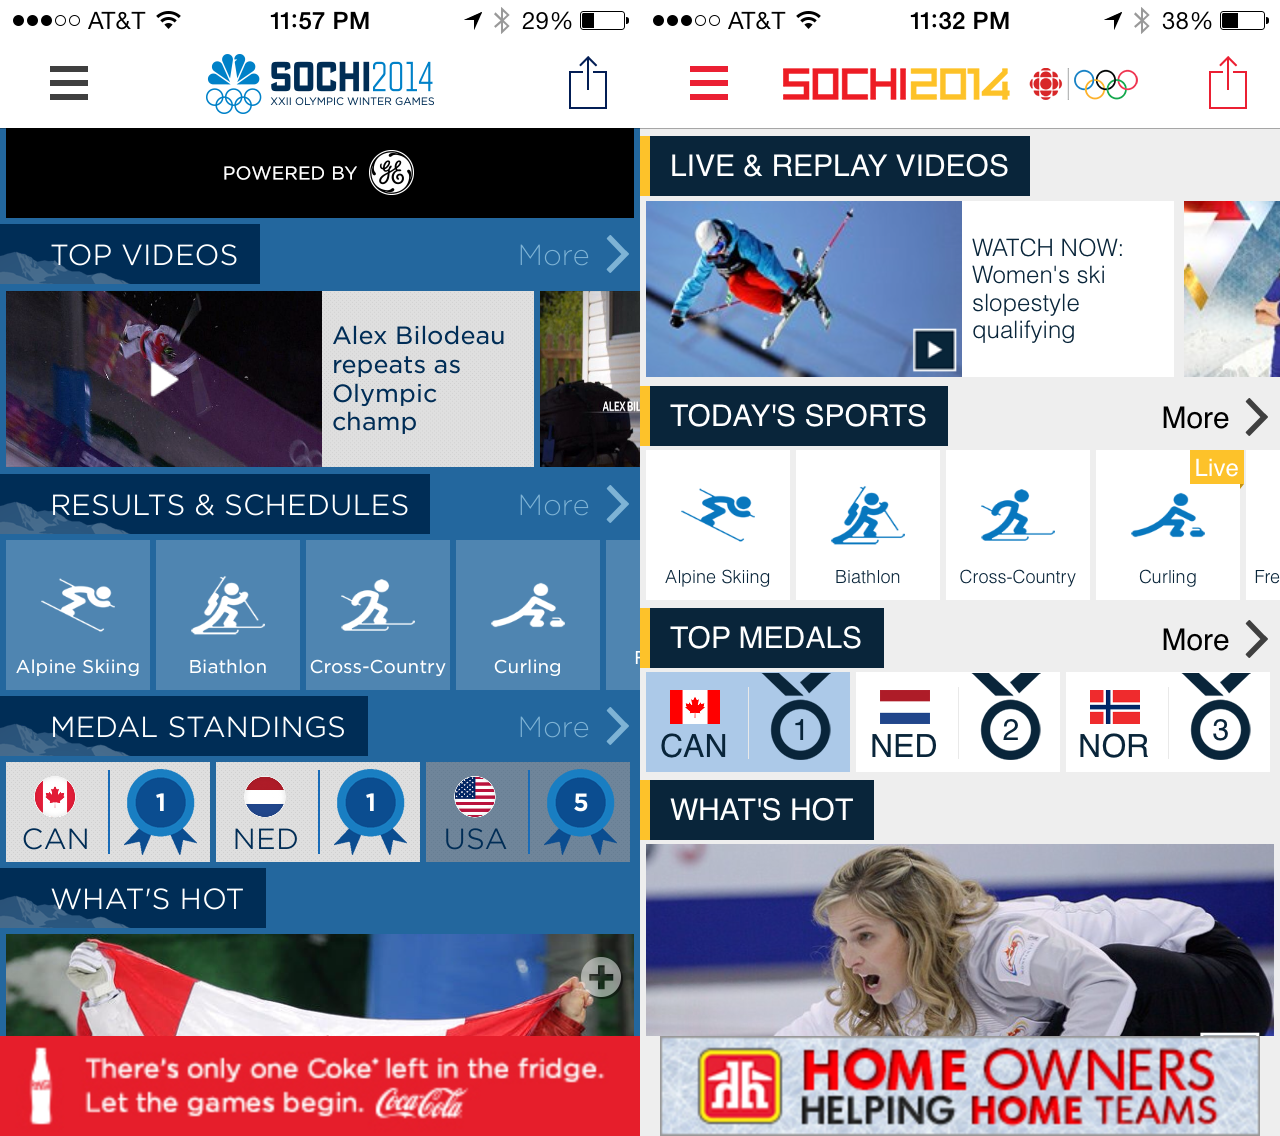 2 olympics apps - things we won't miss about sochi 2014 winter olympics